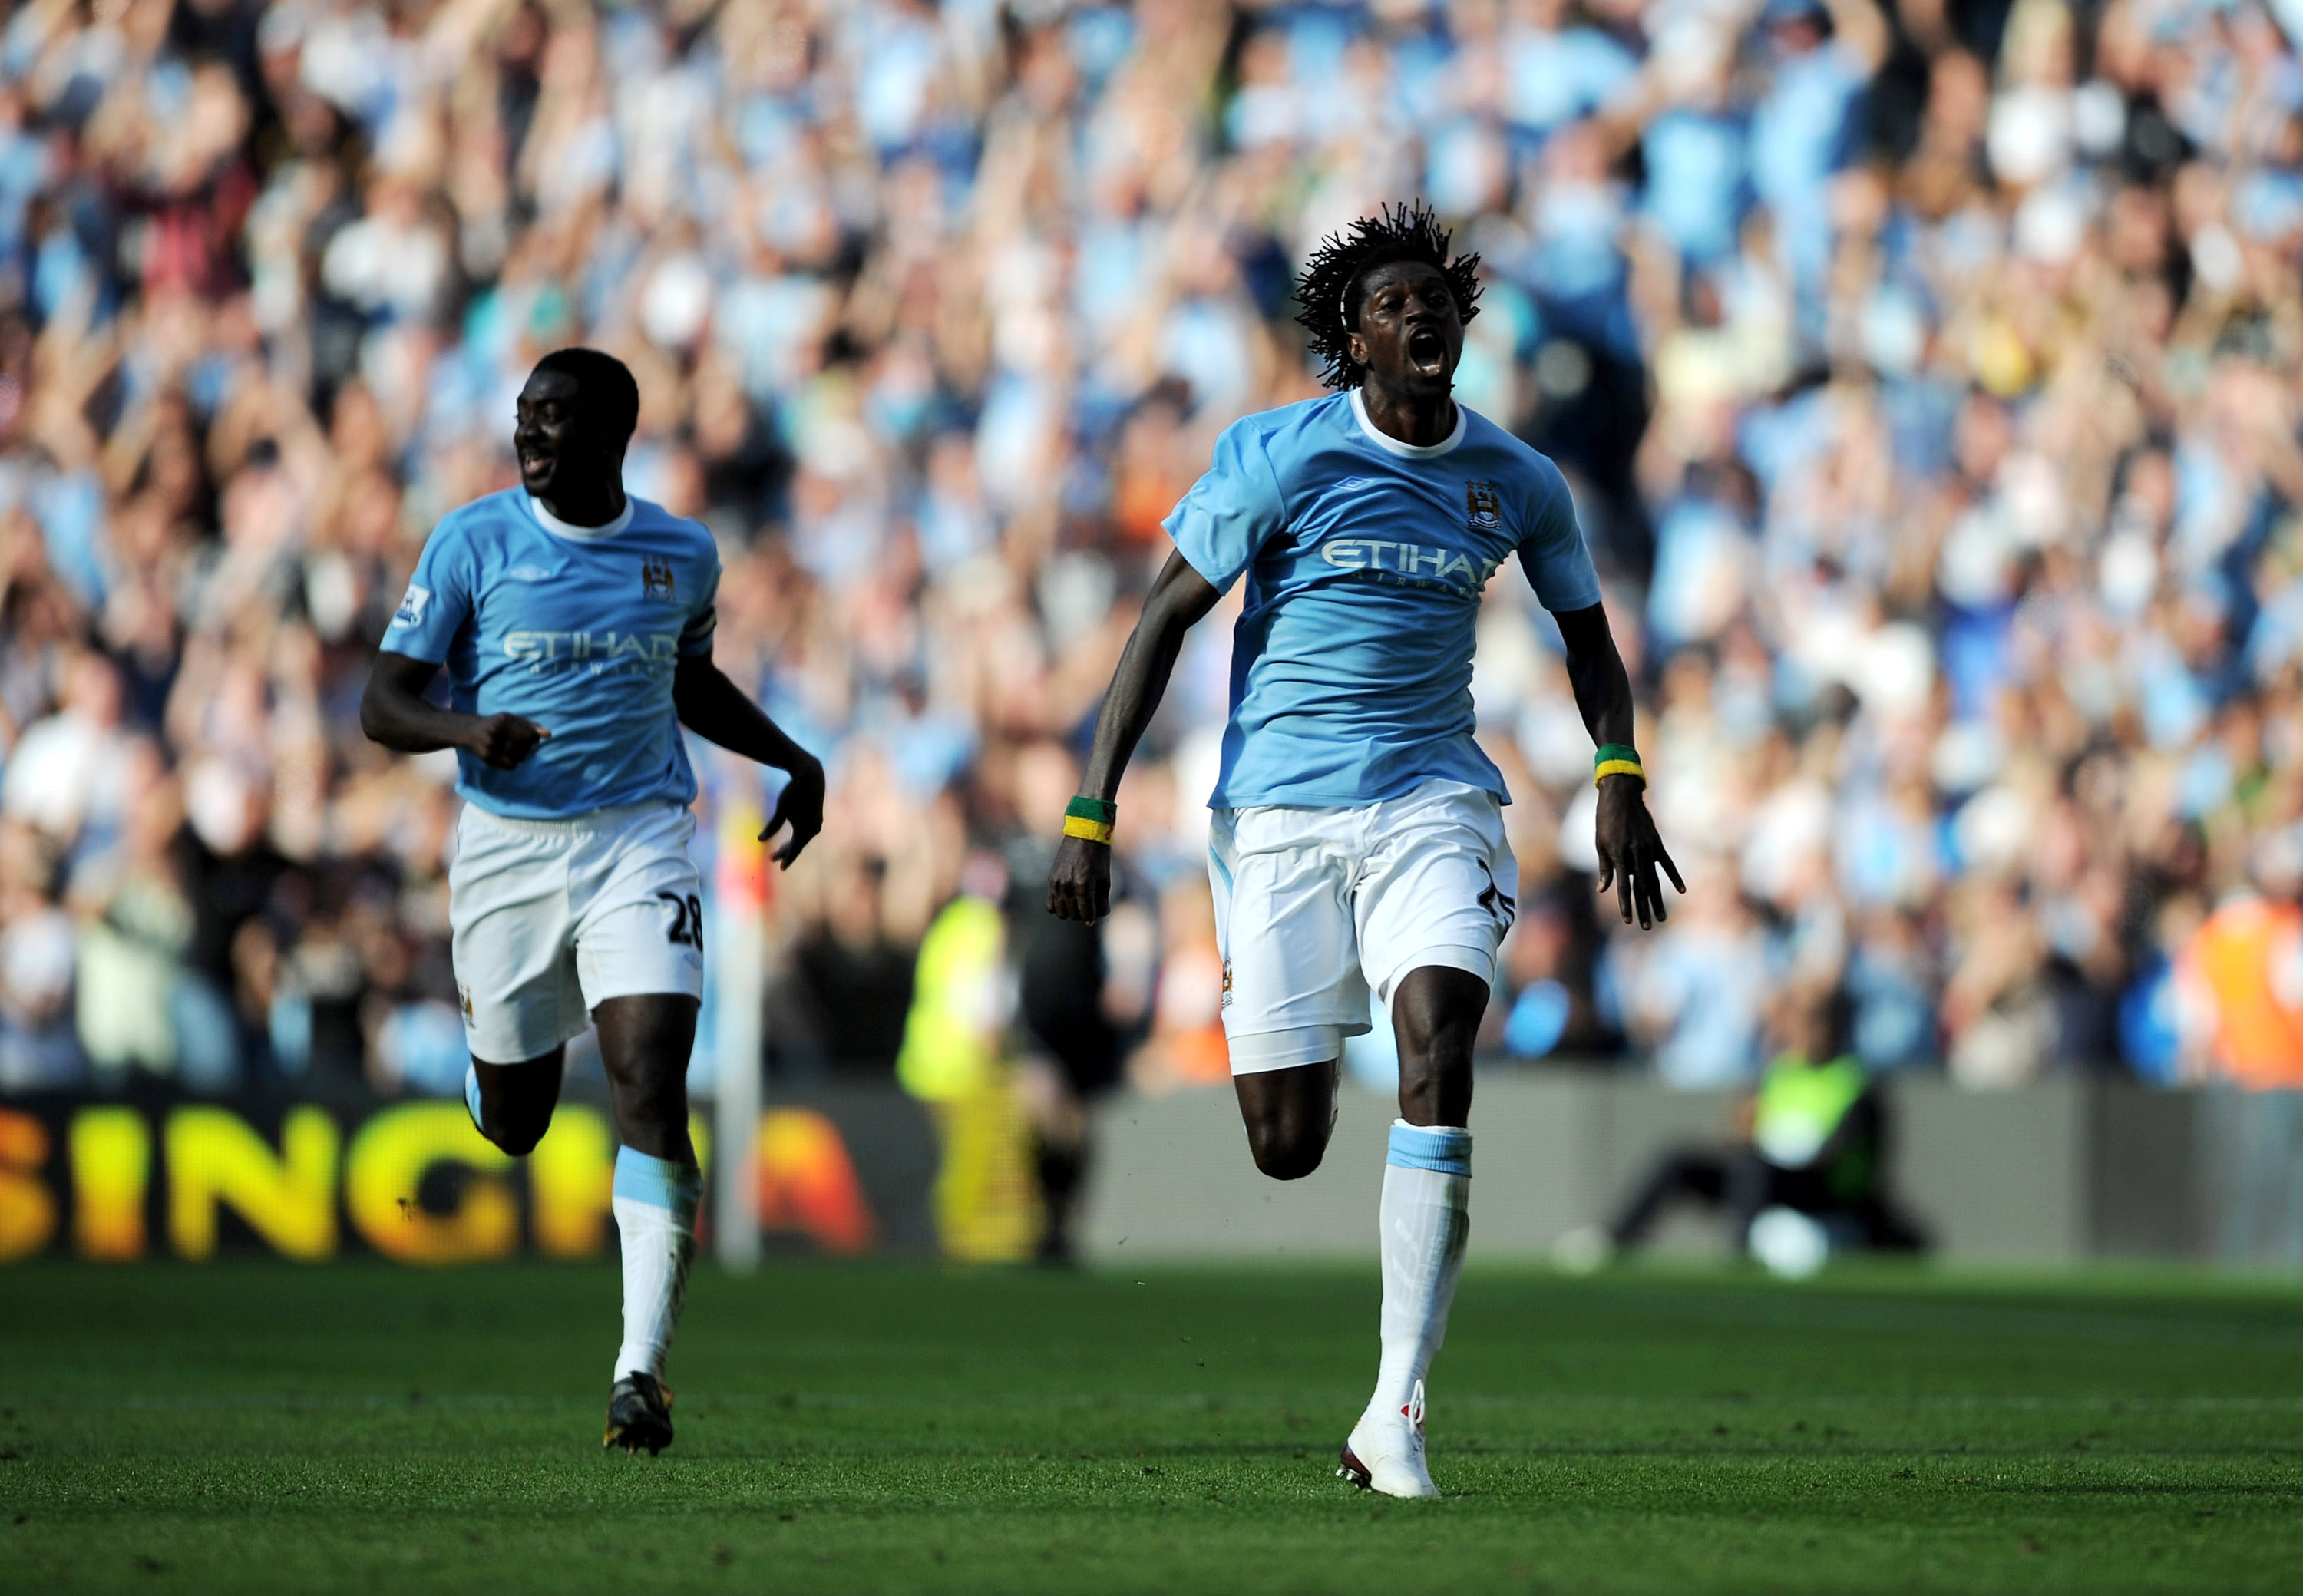 Looking back at the career & life of one Africa's most divisive players - Emmanuel Adebayor